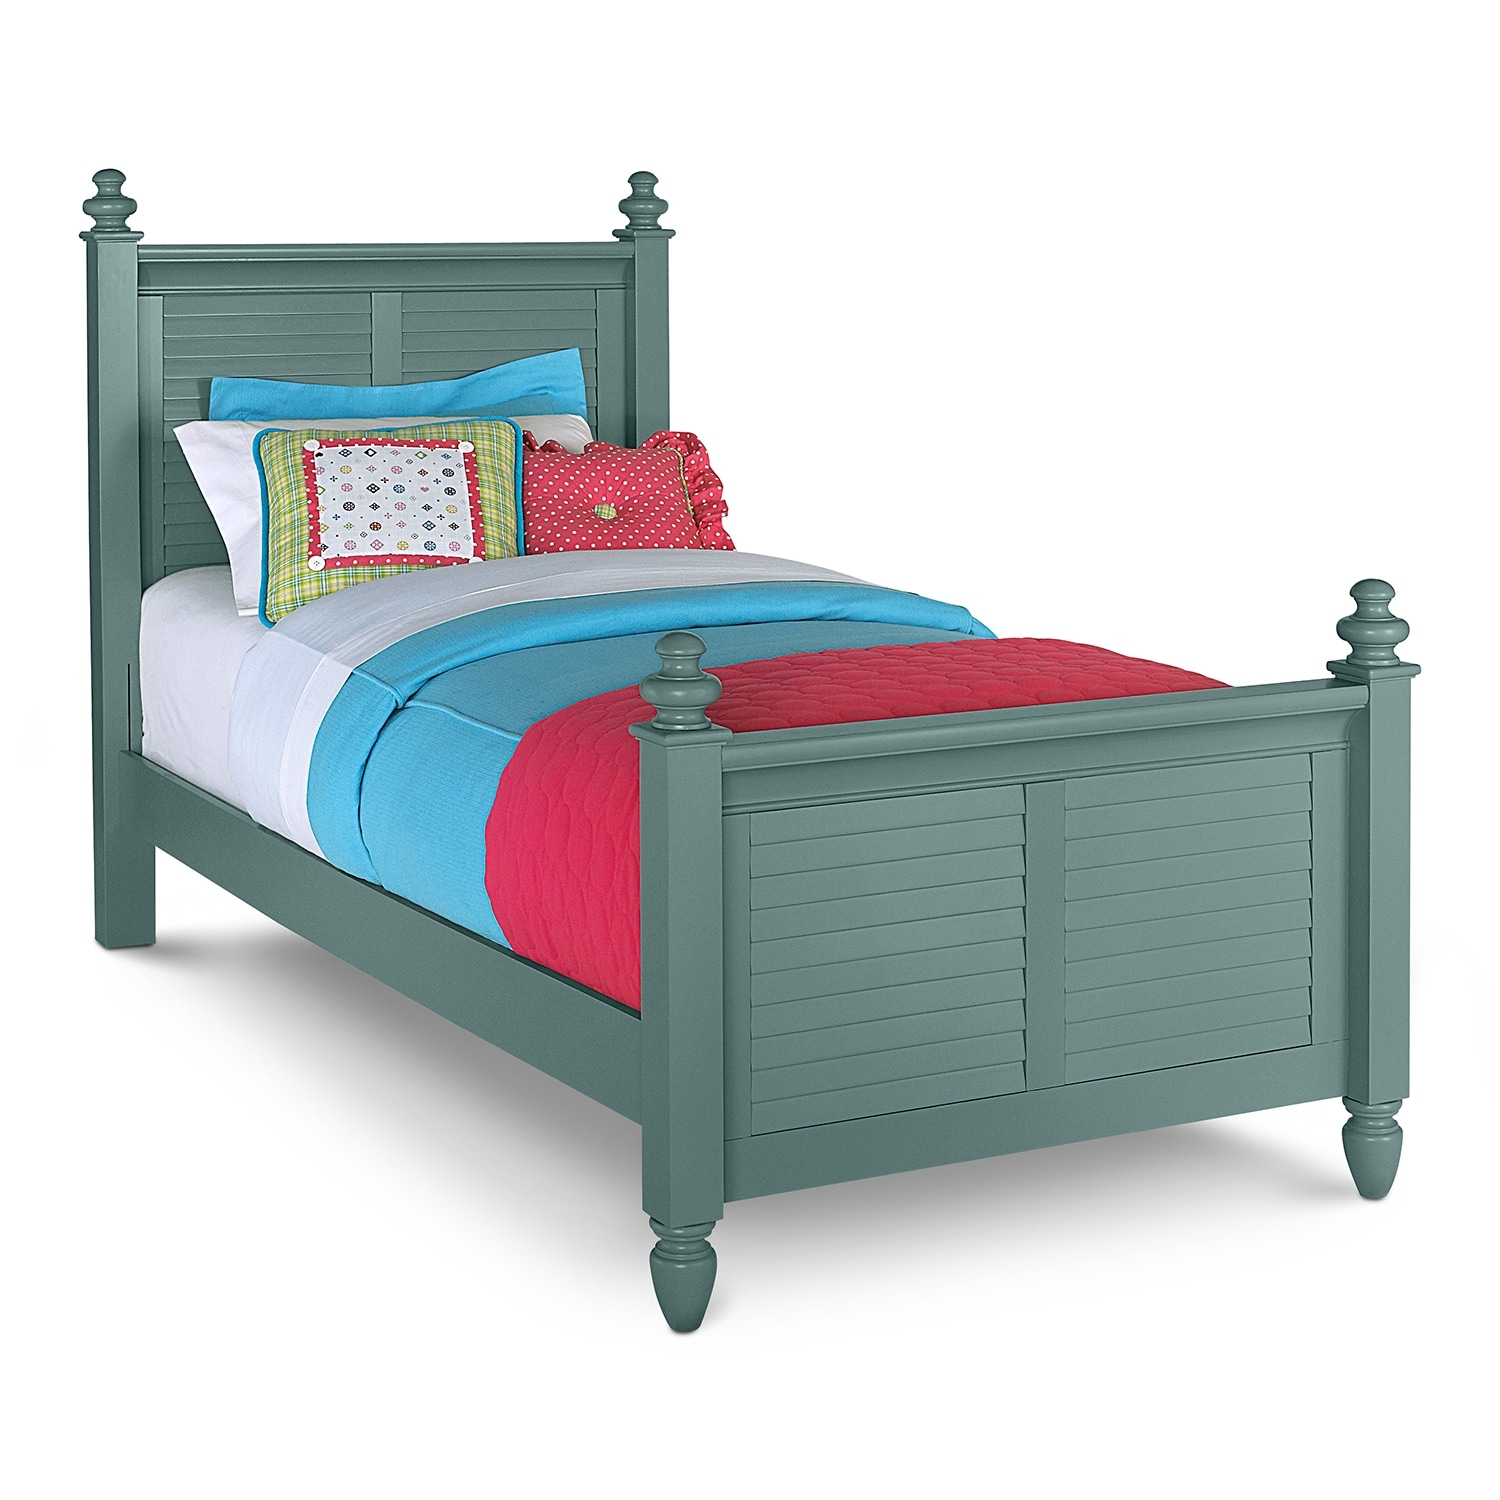 Kids Furniture - Seaside Full Bed - Blue